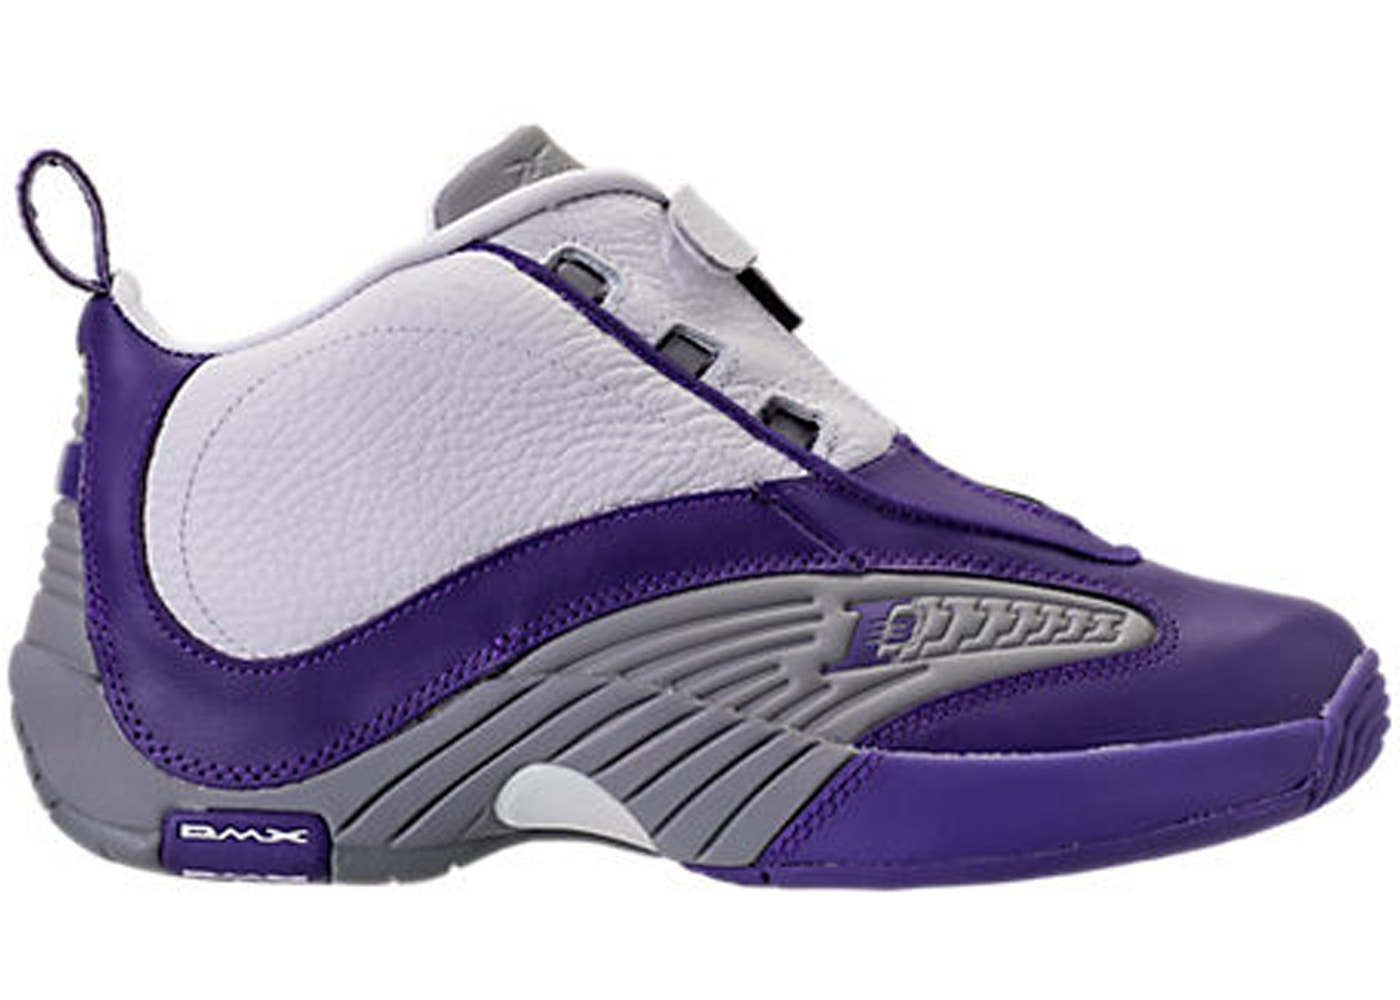 best place sale retailer fast delivery Reebok Answer IV Kobe Bryant PE